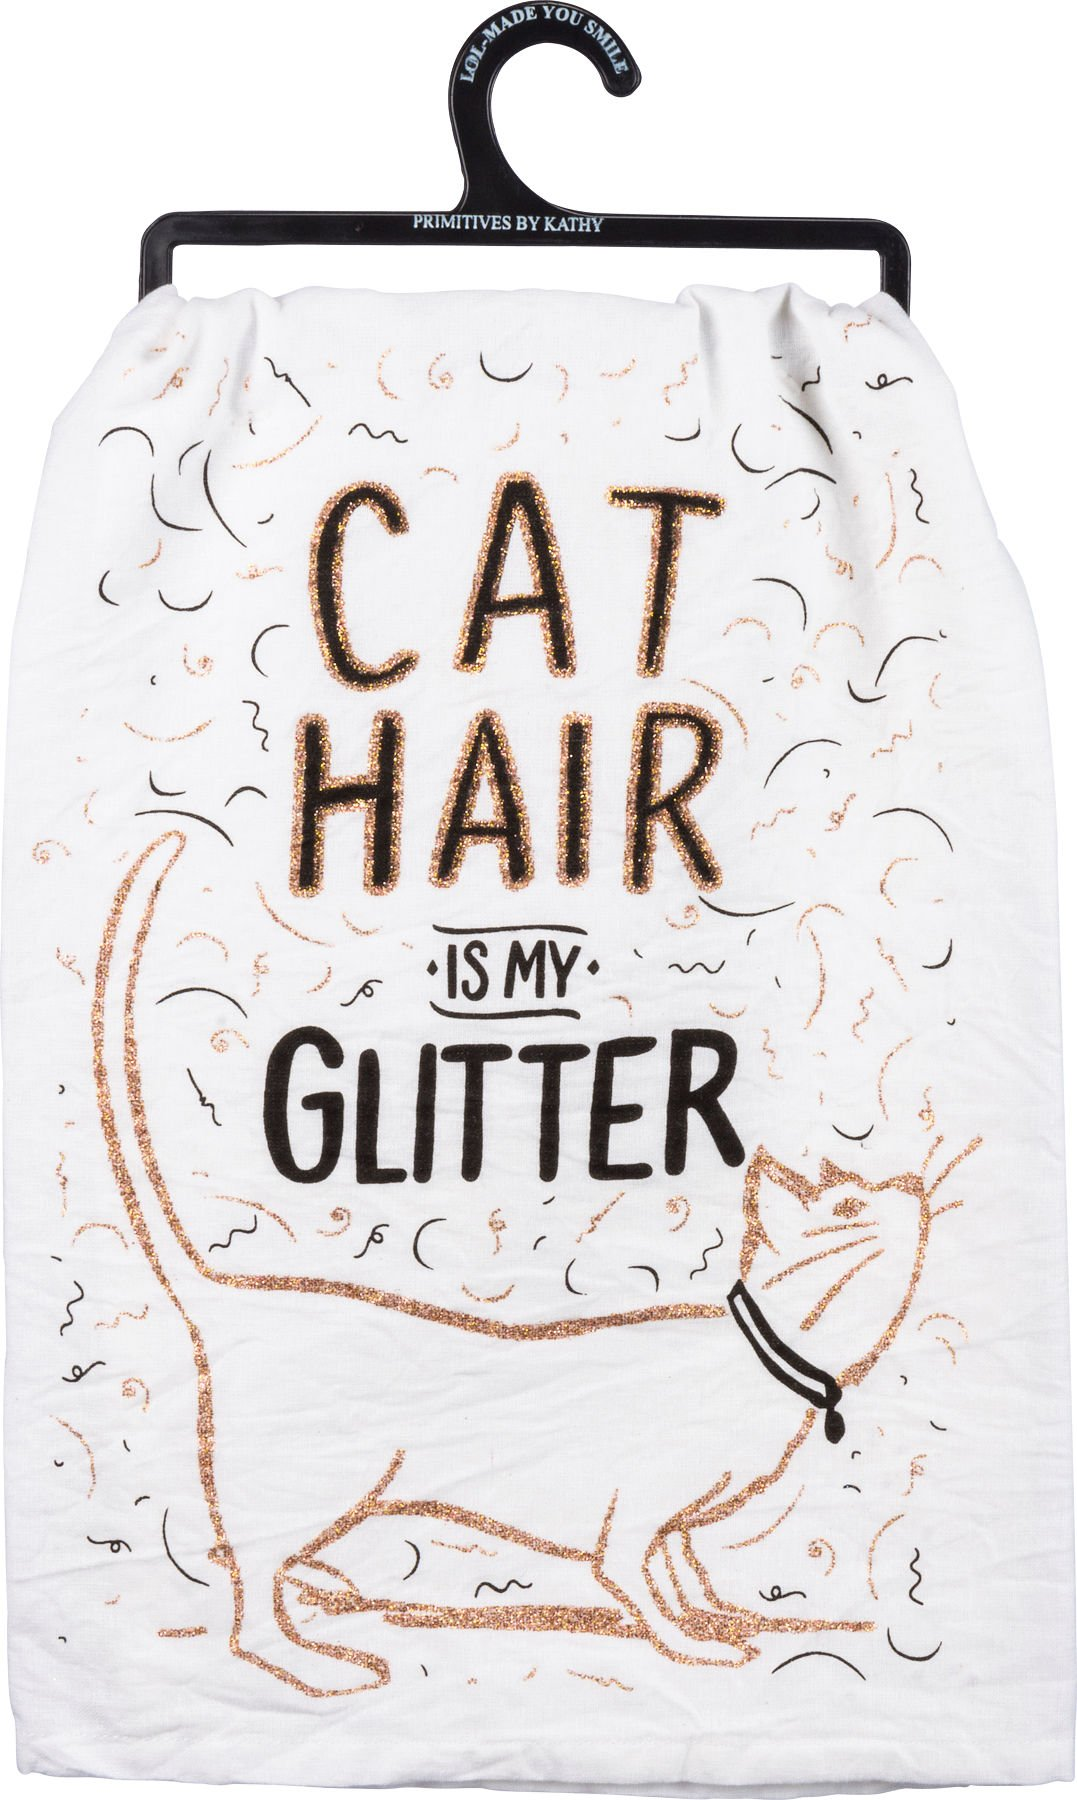 Primitives by Kathy Glitter Kitchen Towel - Cat Hair Is My Glitter by Primitives by Kathy